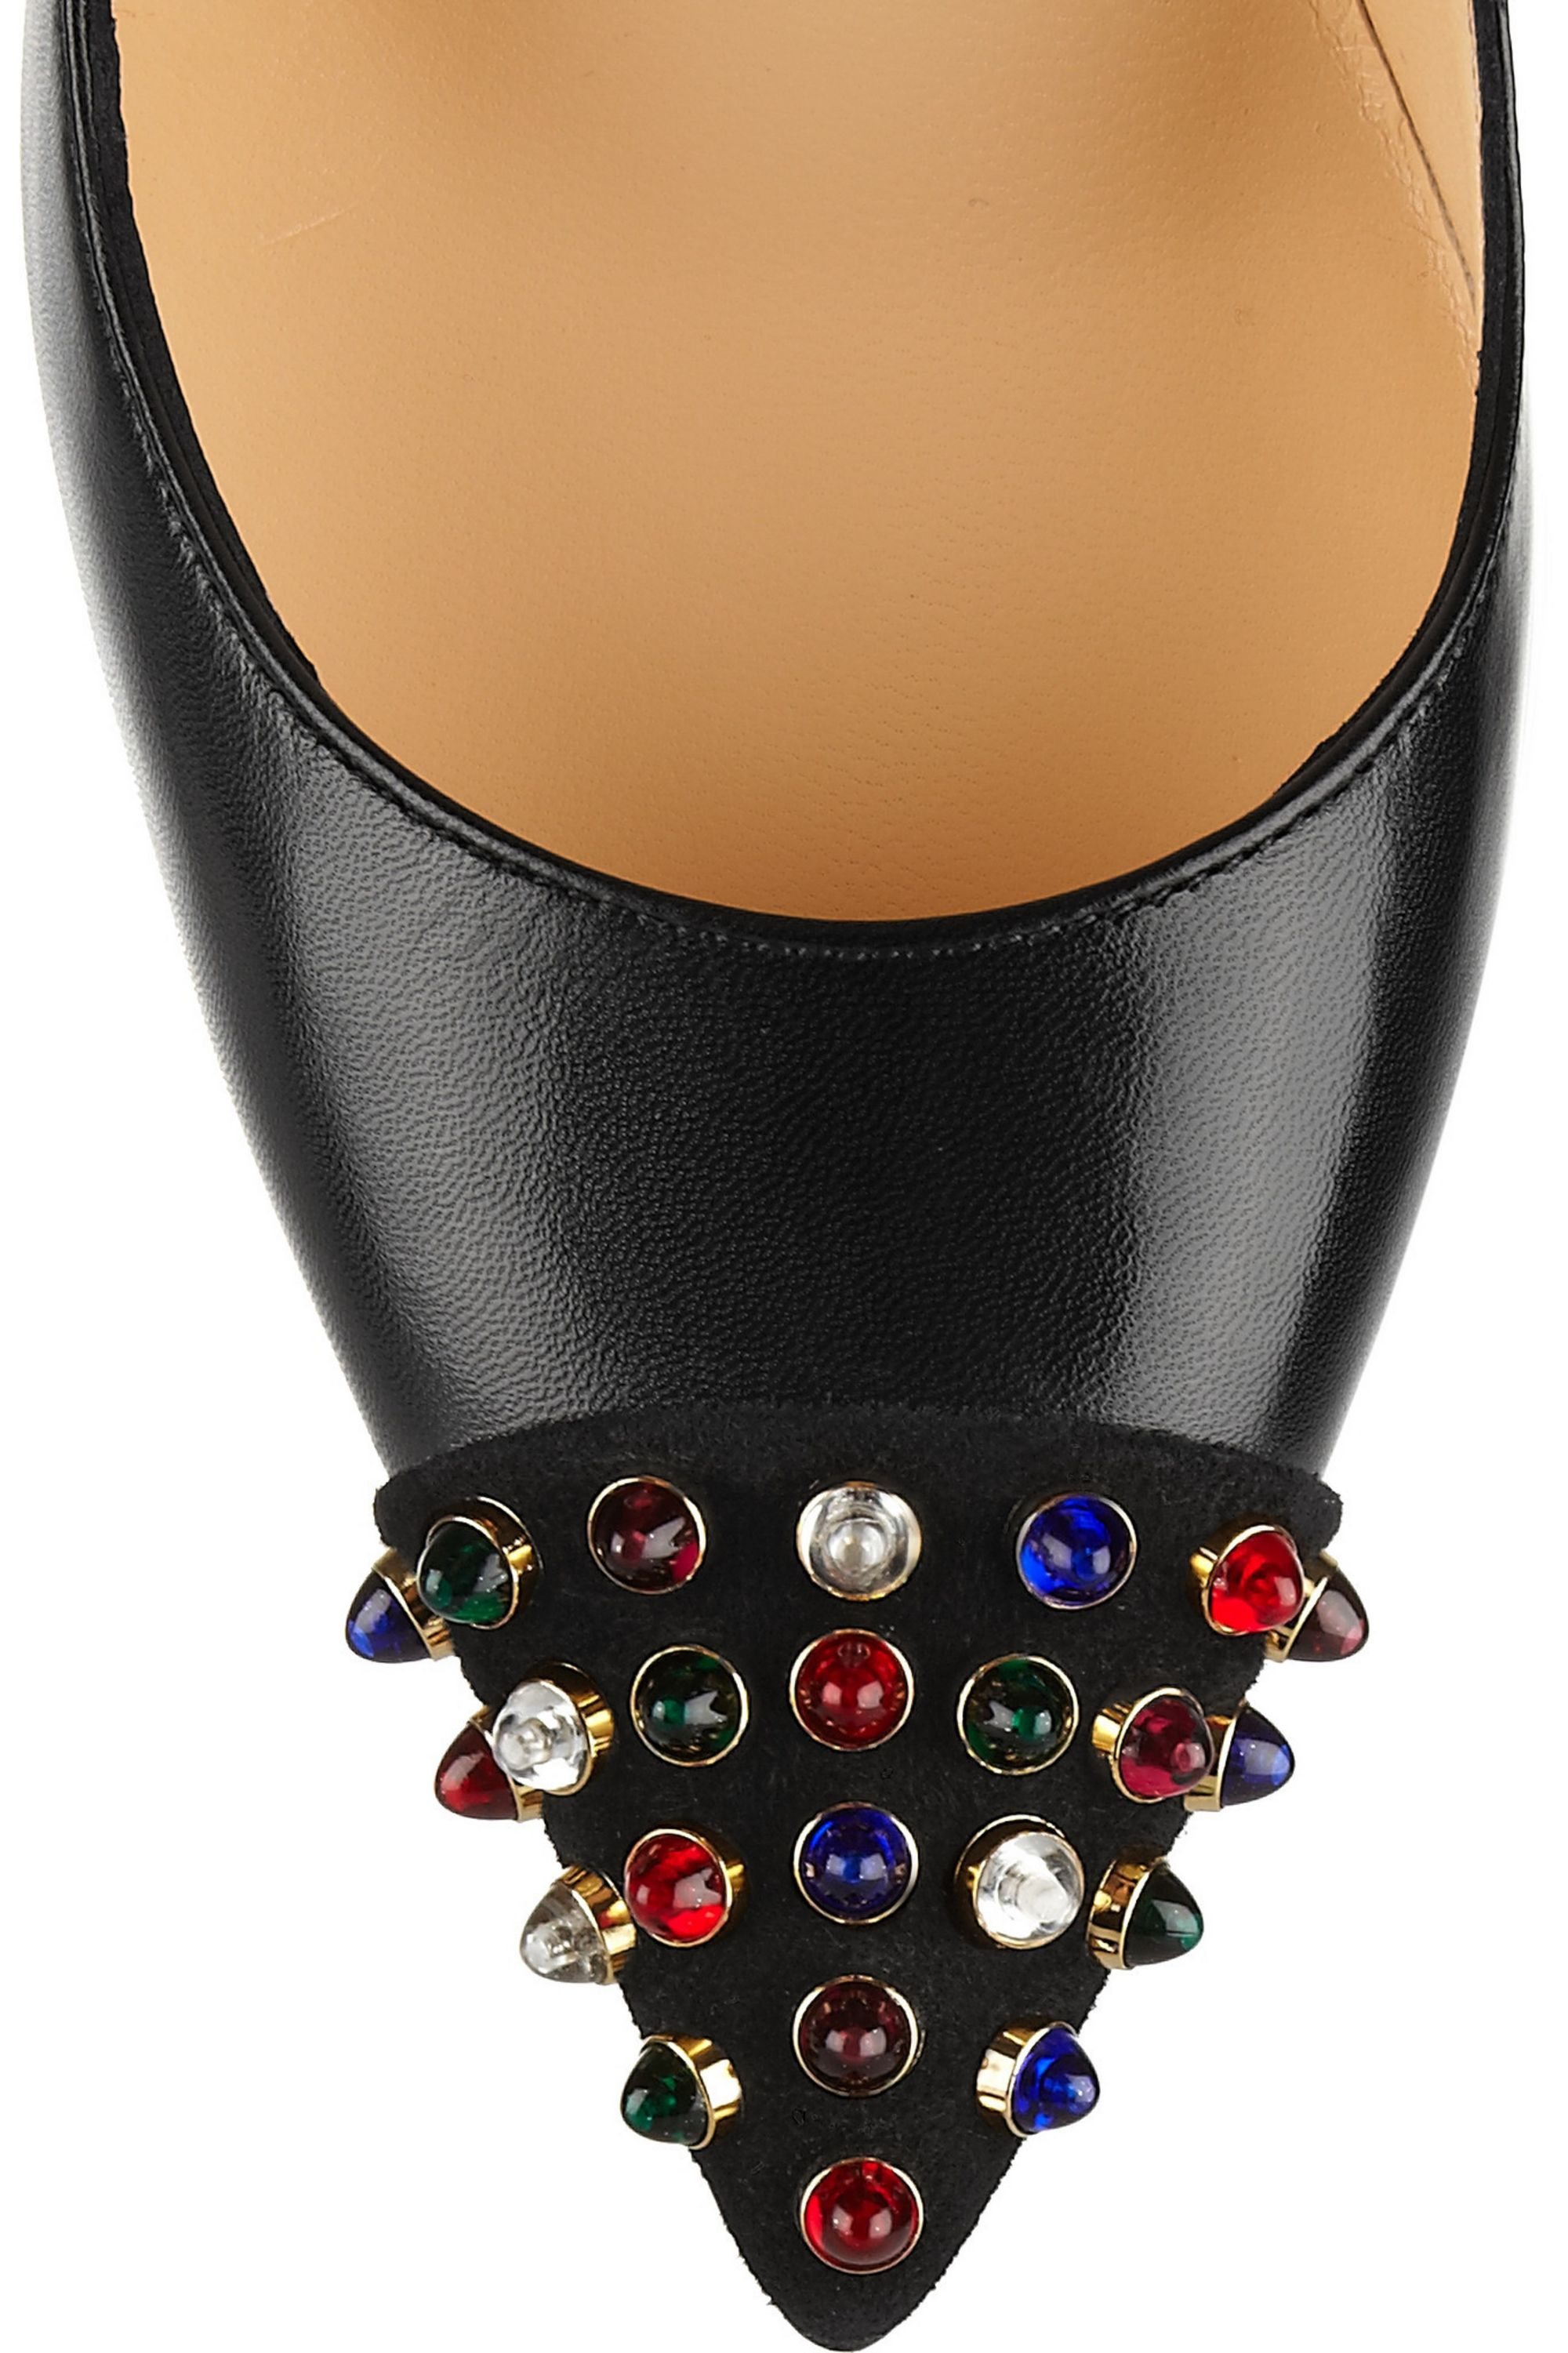 Christian Louboutin Cabo 120 embellished leather pumps